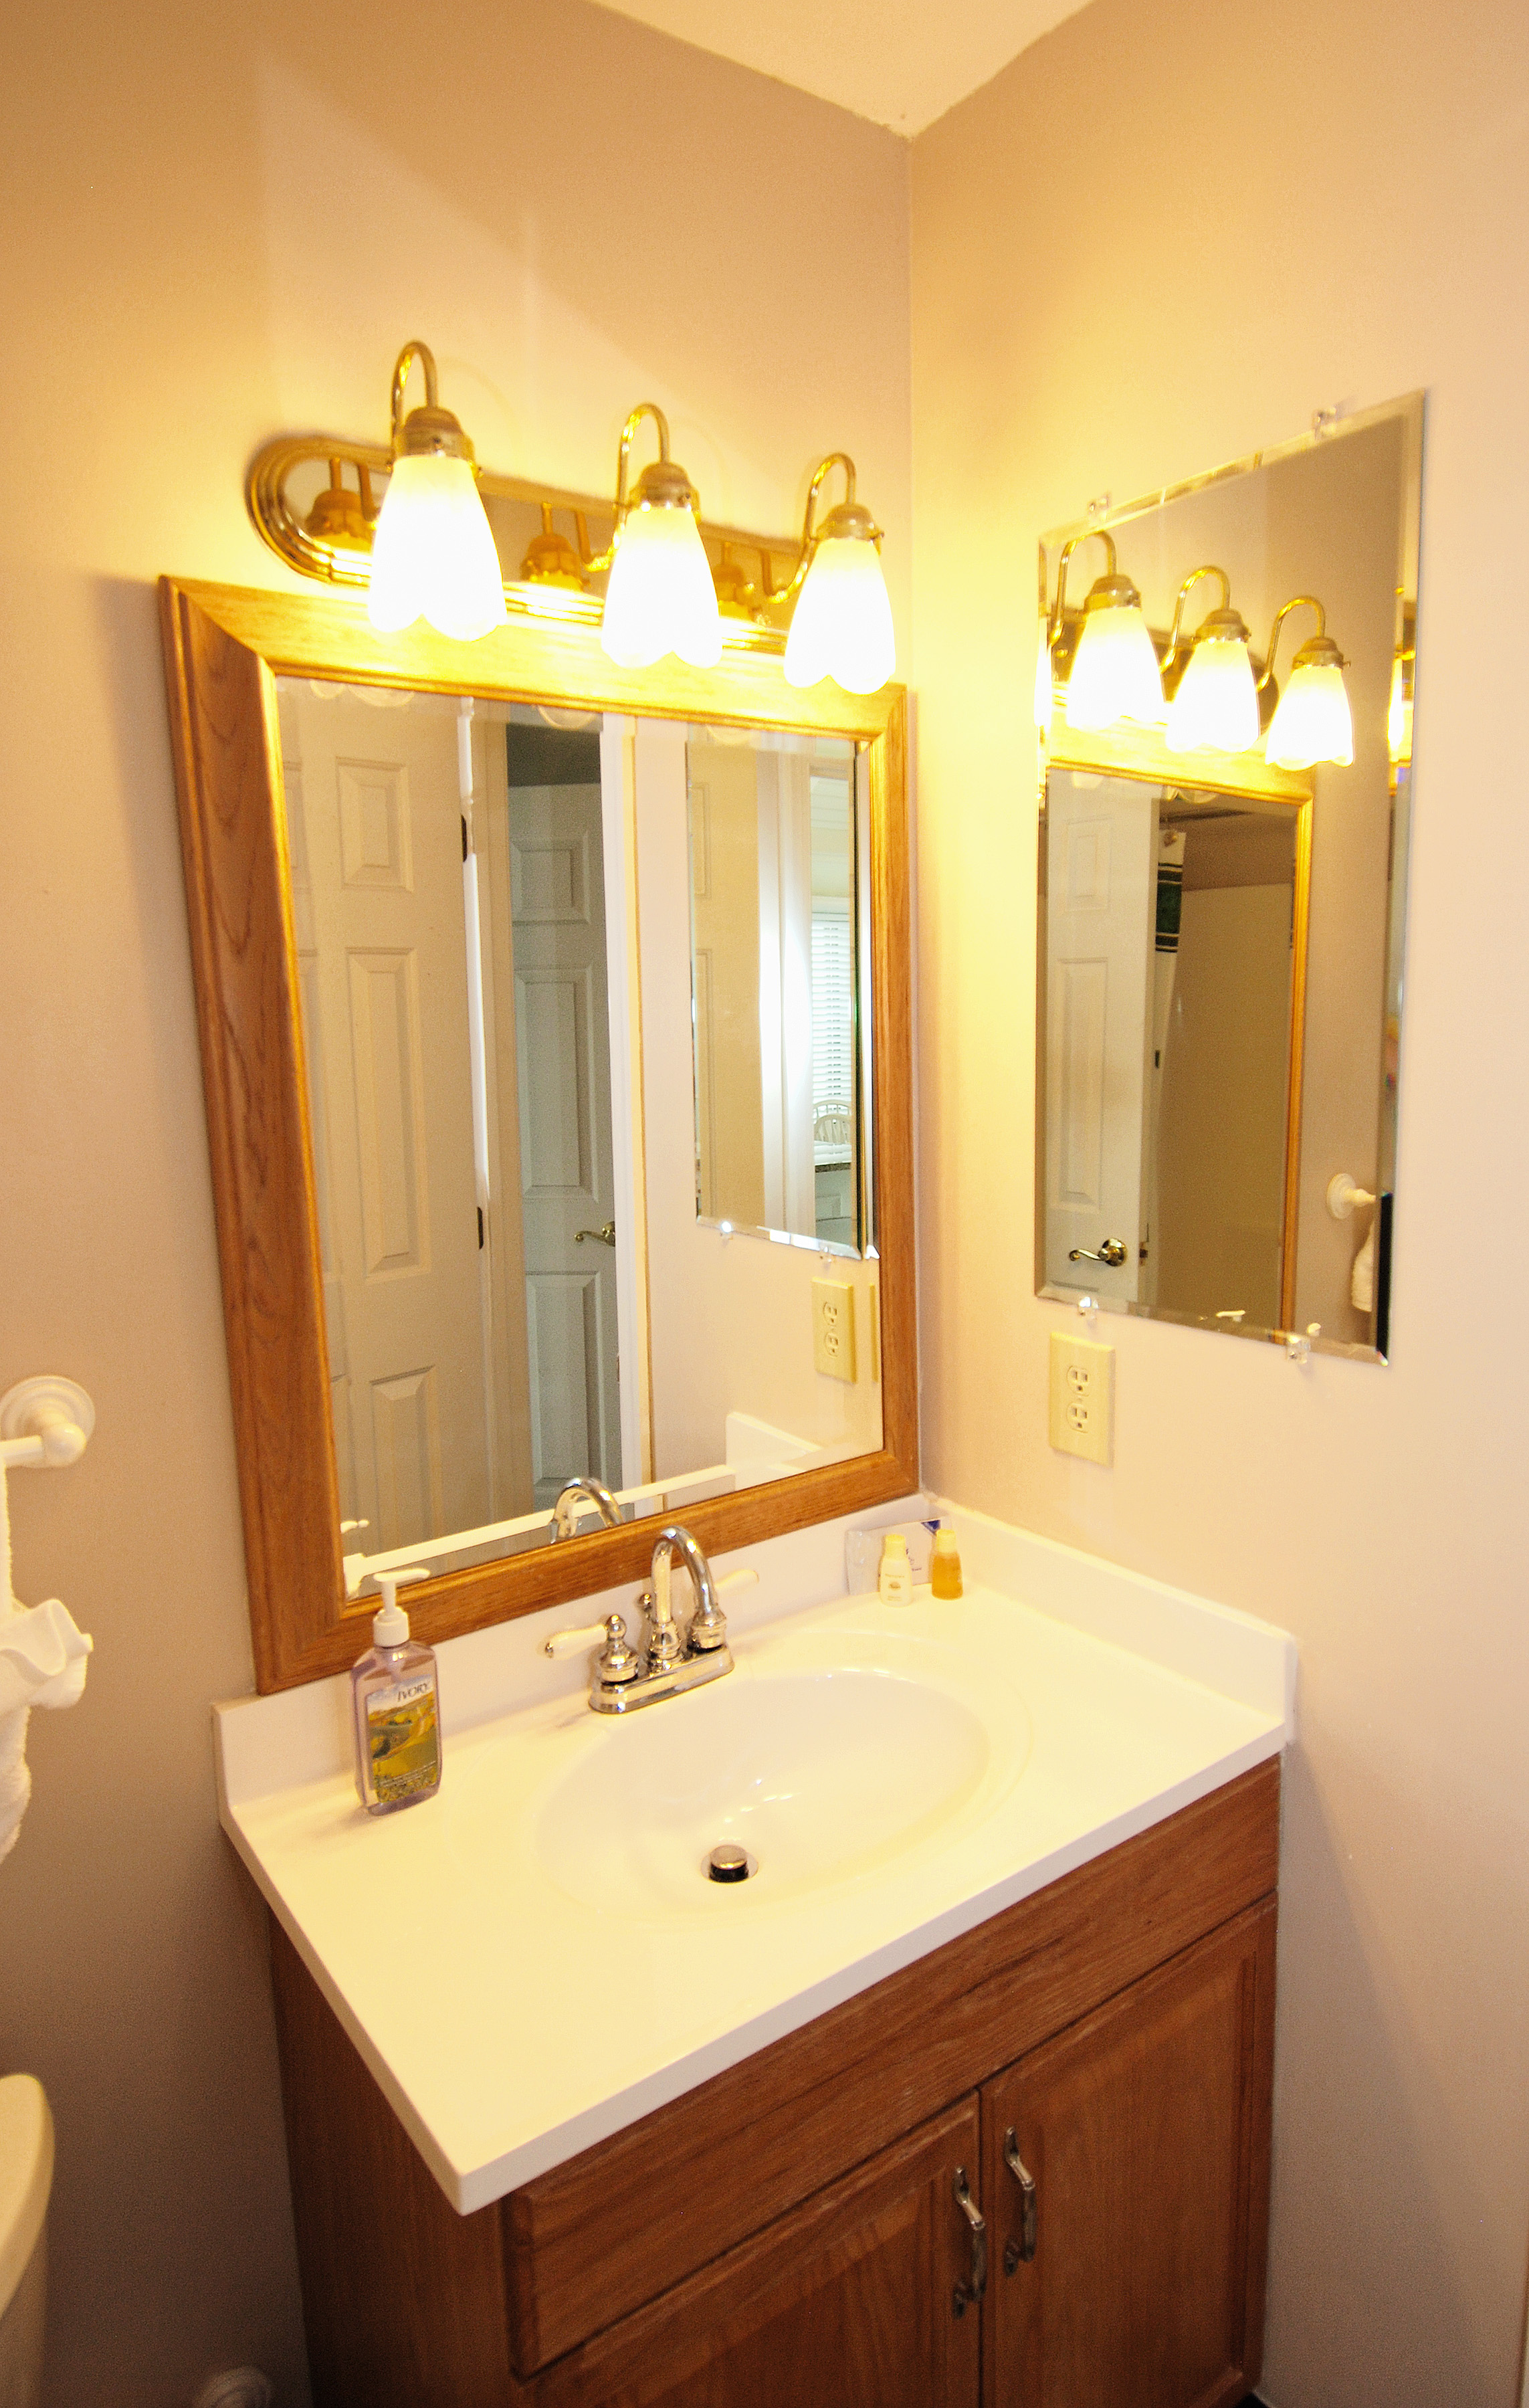 The full bath can be entered off the kitchen or from the first floor guest bedroom.